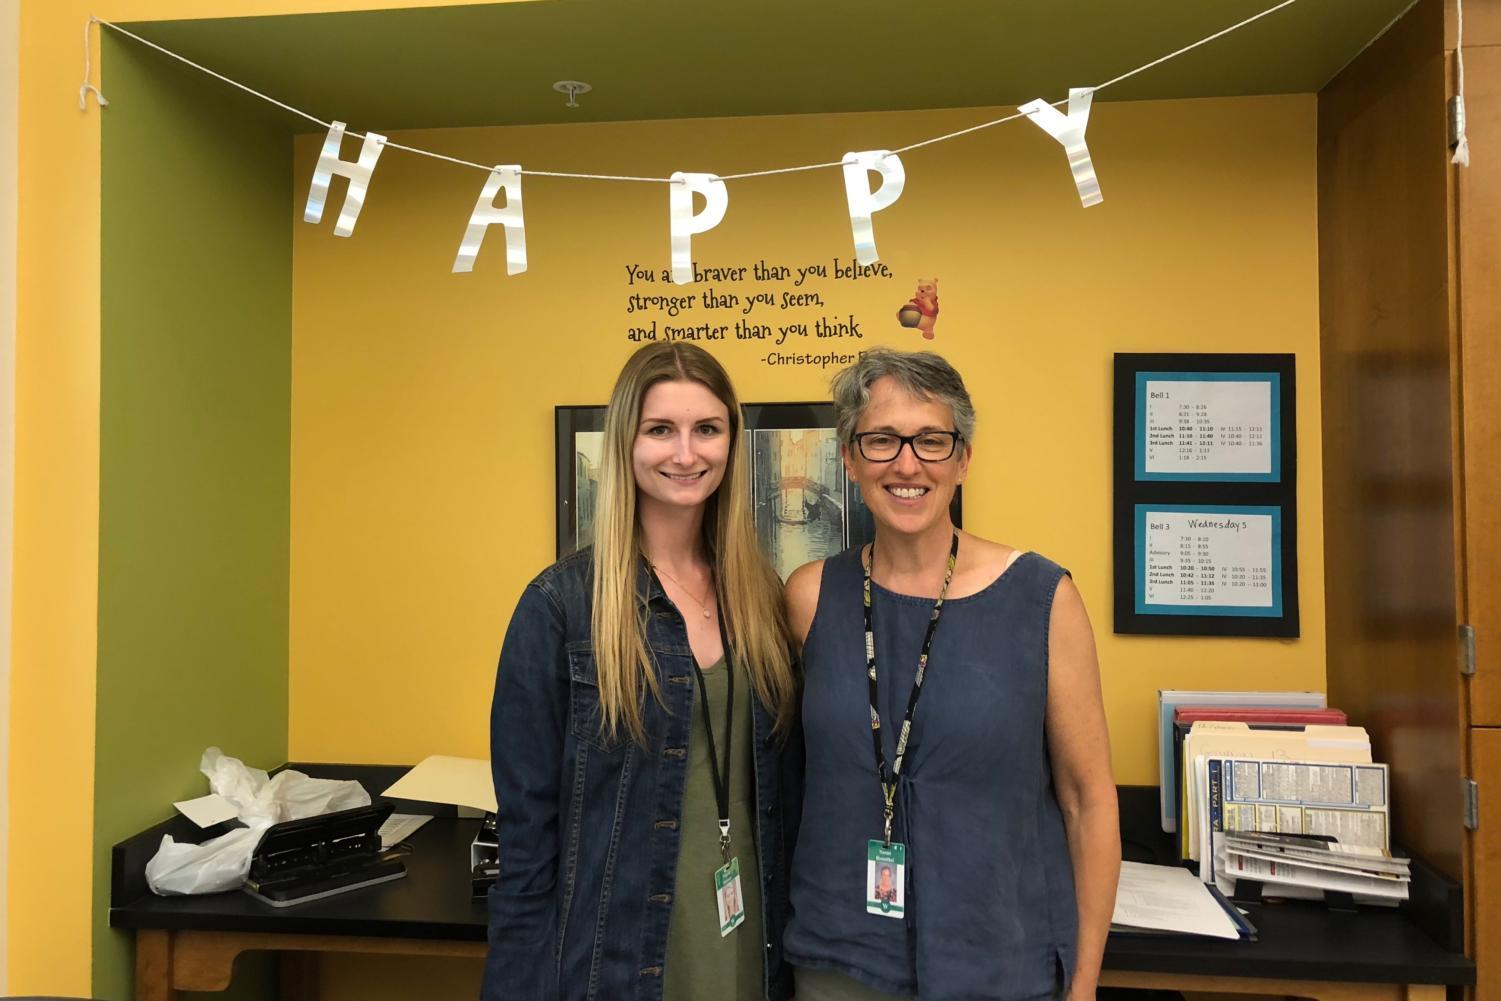 Coworkers Nicole Stetson (left) and Naomi Rosenthal (right) smile for a photo in the LRT room. Rosenthal, who has taught students for 32 years, is retiring at the end of the school year.